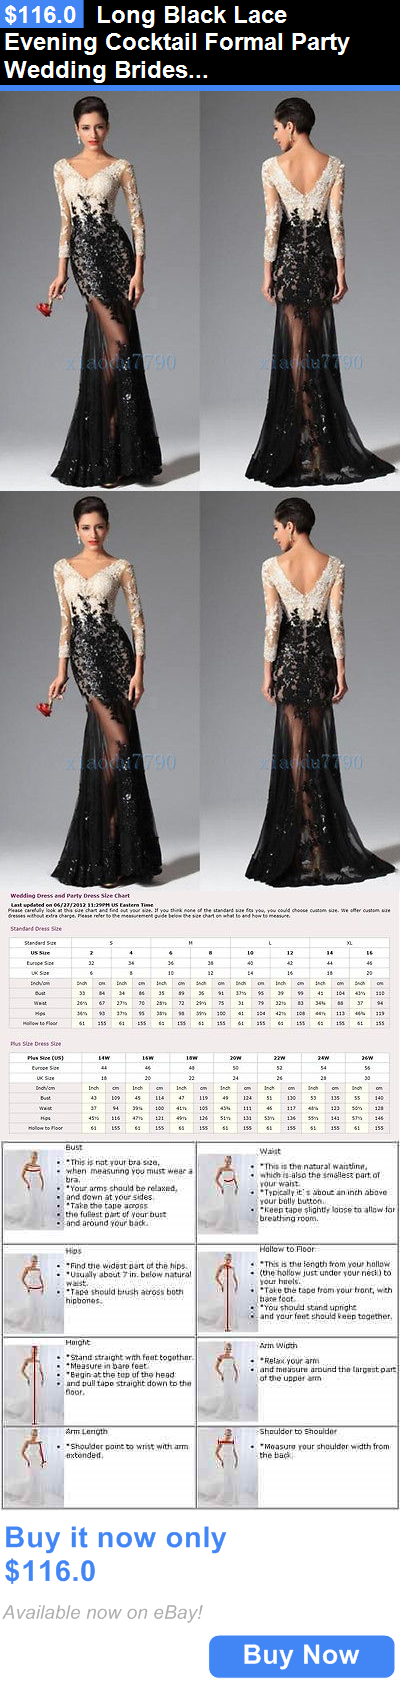 Prom And Formal Dresses: Long Black Lace Evening Cocktail Formal Party Wedding Bridesmaid Prom Gown Dress BUY IT NOW ONLY: $116.0